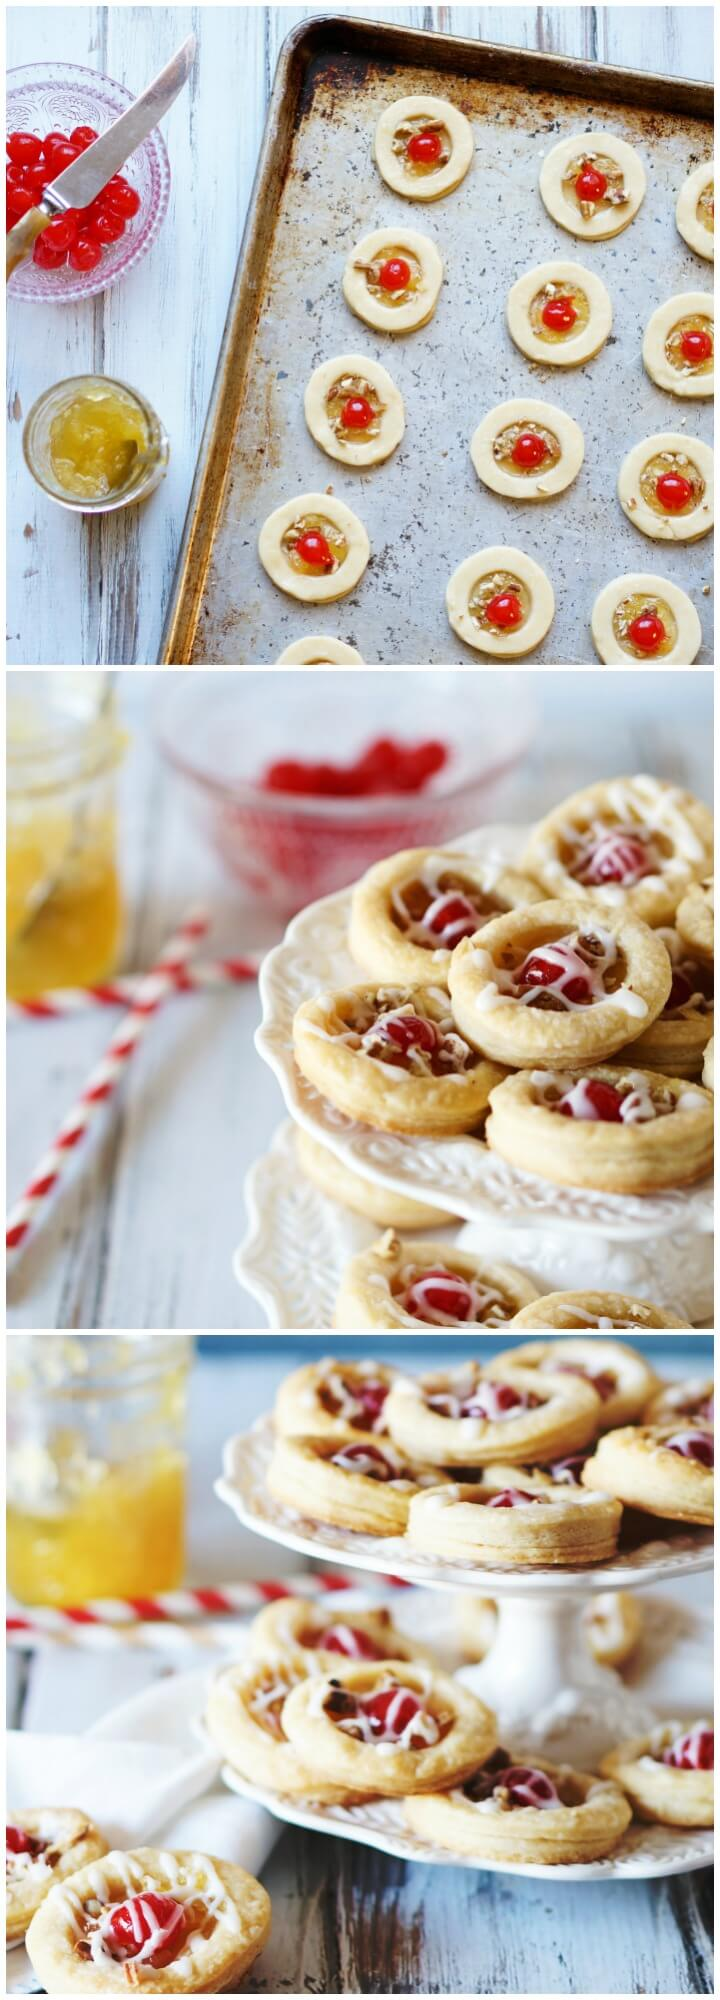 Pineapple Cookies, light flaky pastry rounds with juicy pineapple filling, topped with maraschino cherries, pecans, and powdered sugar glaze.